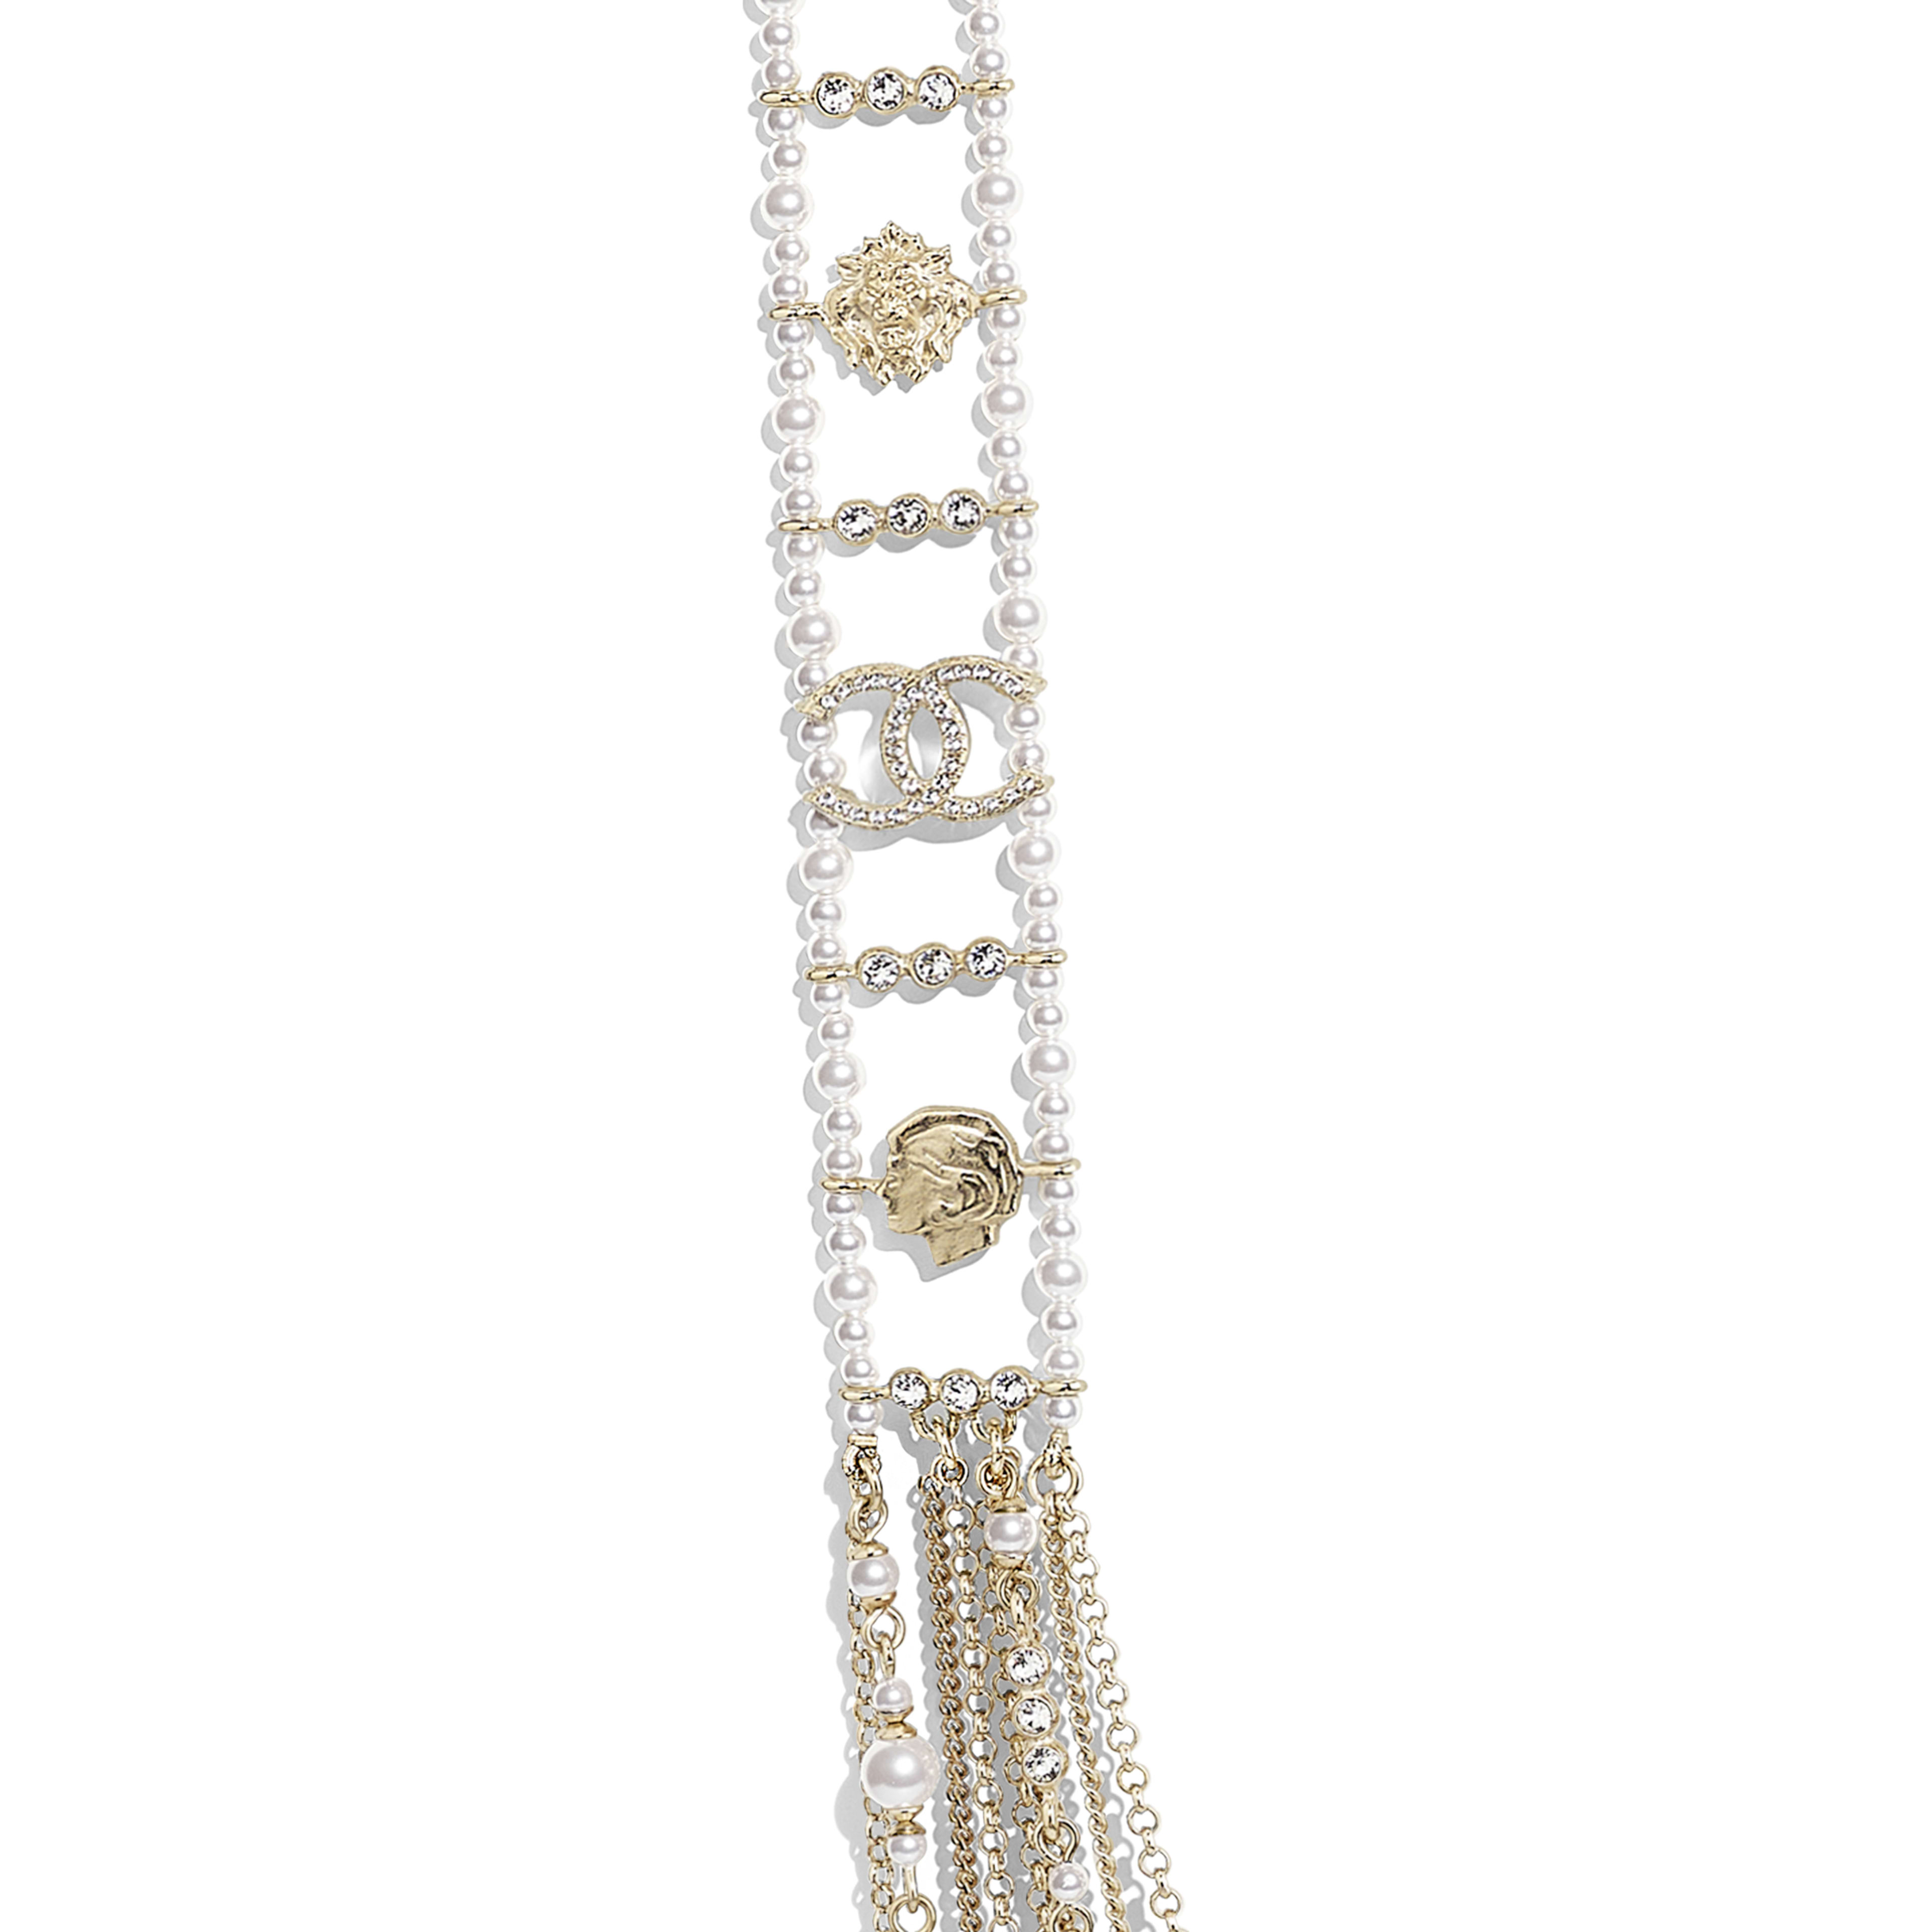 Long Necklace - Gold, Pearly White & Crystal - Metal, Glass Pearls & Diamantés - Other view - see full sized version